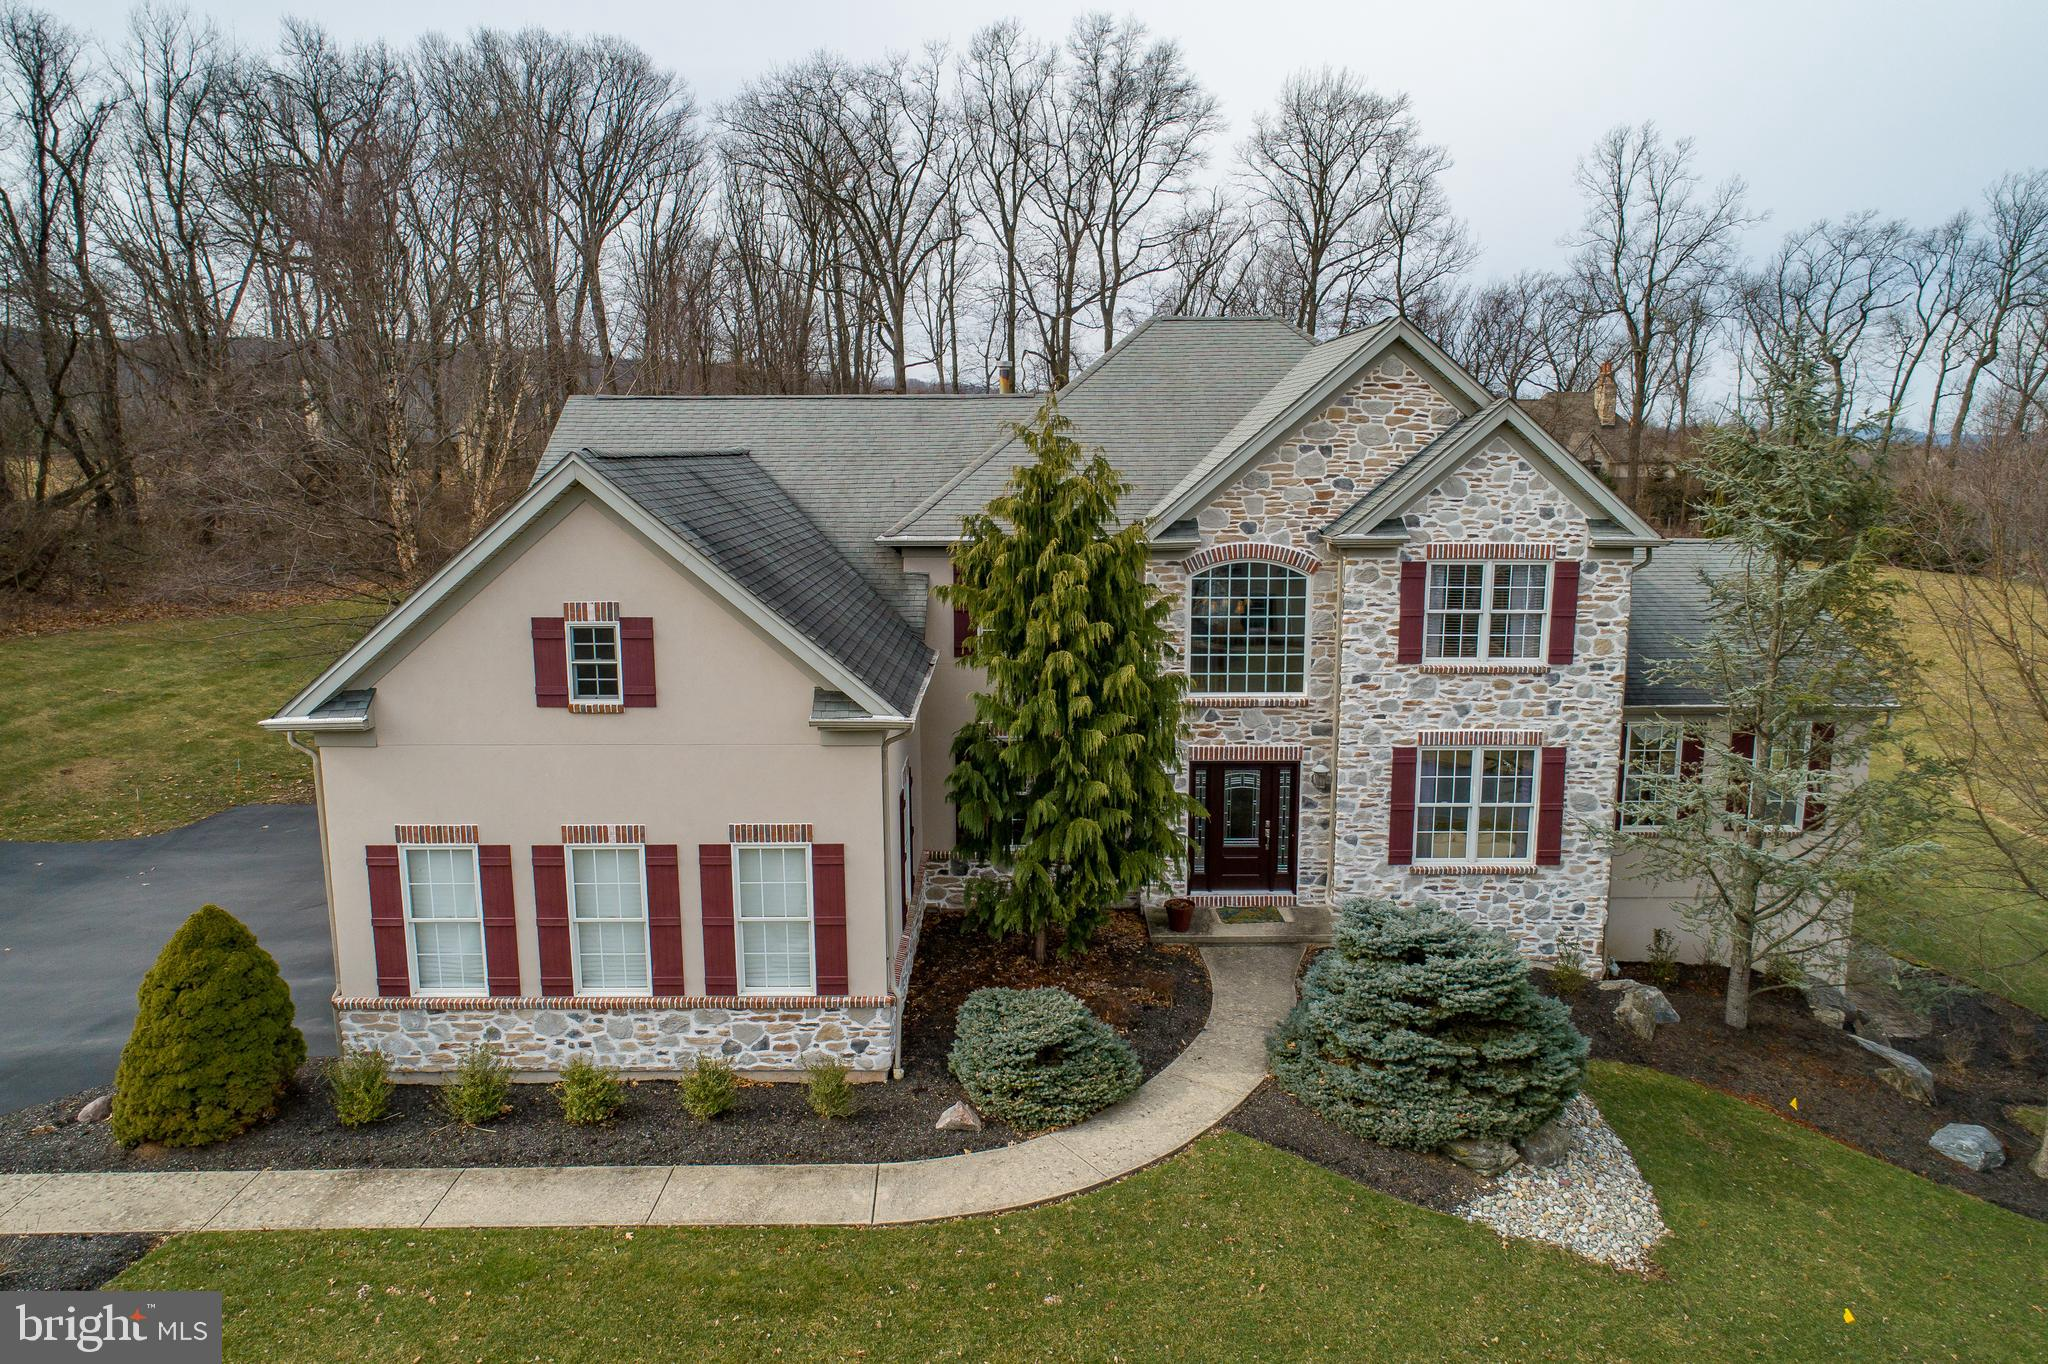 1450 Jakes Place, Hellertown, PA 18055